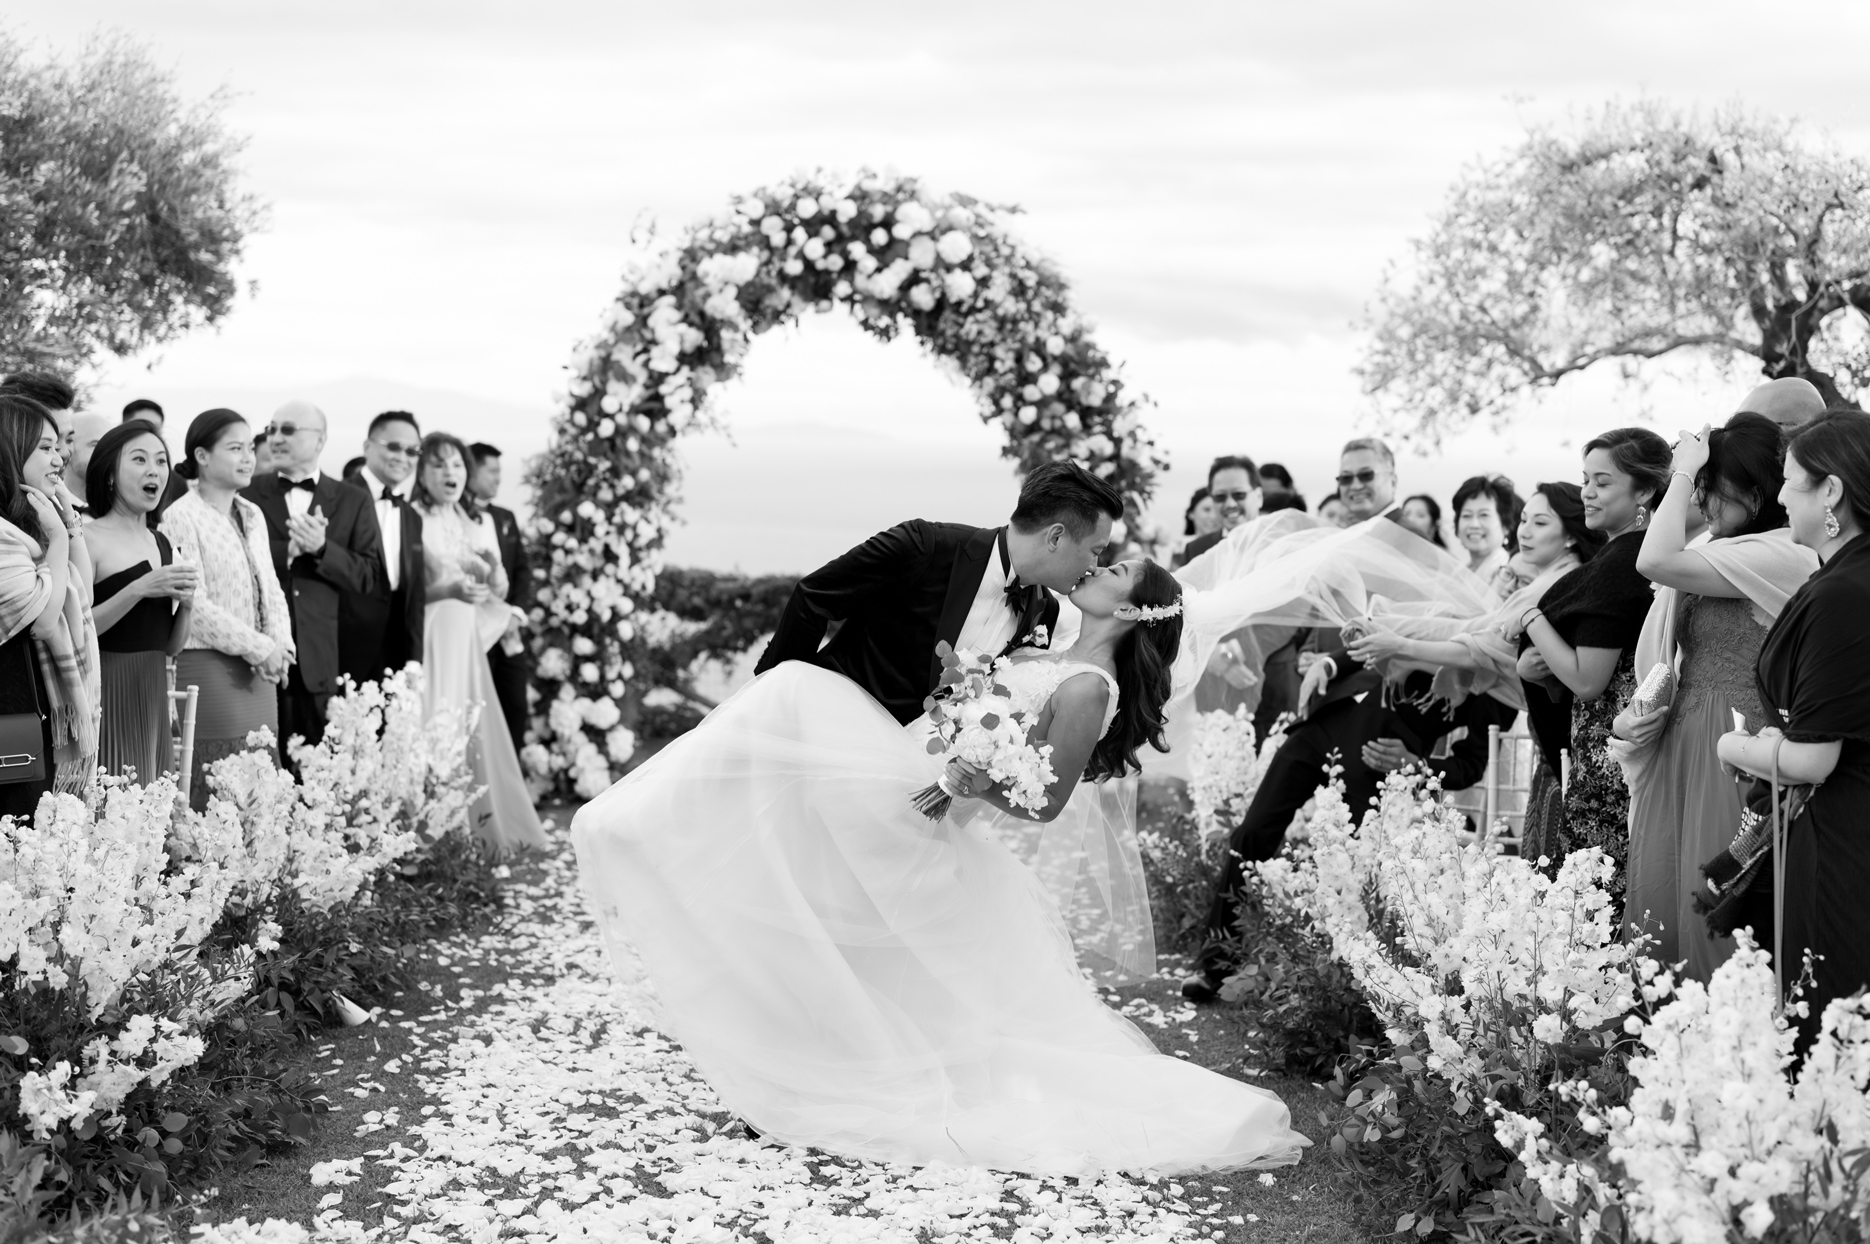 groom dips bride during recessional surrounded by guests